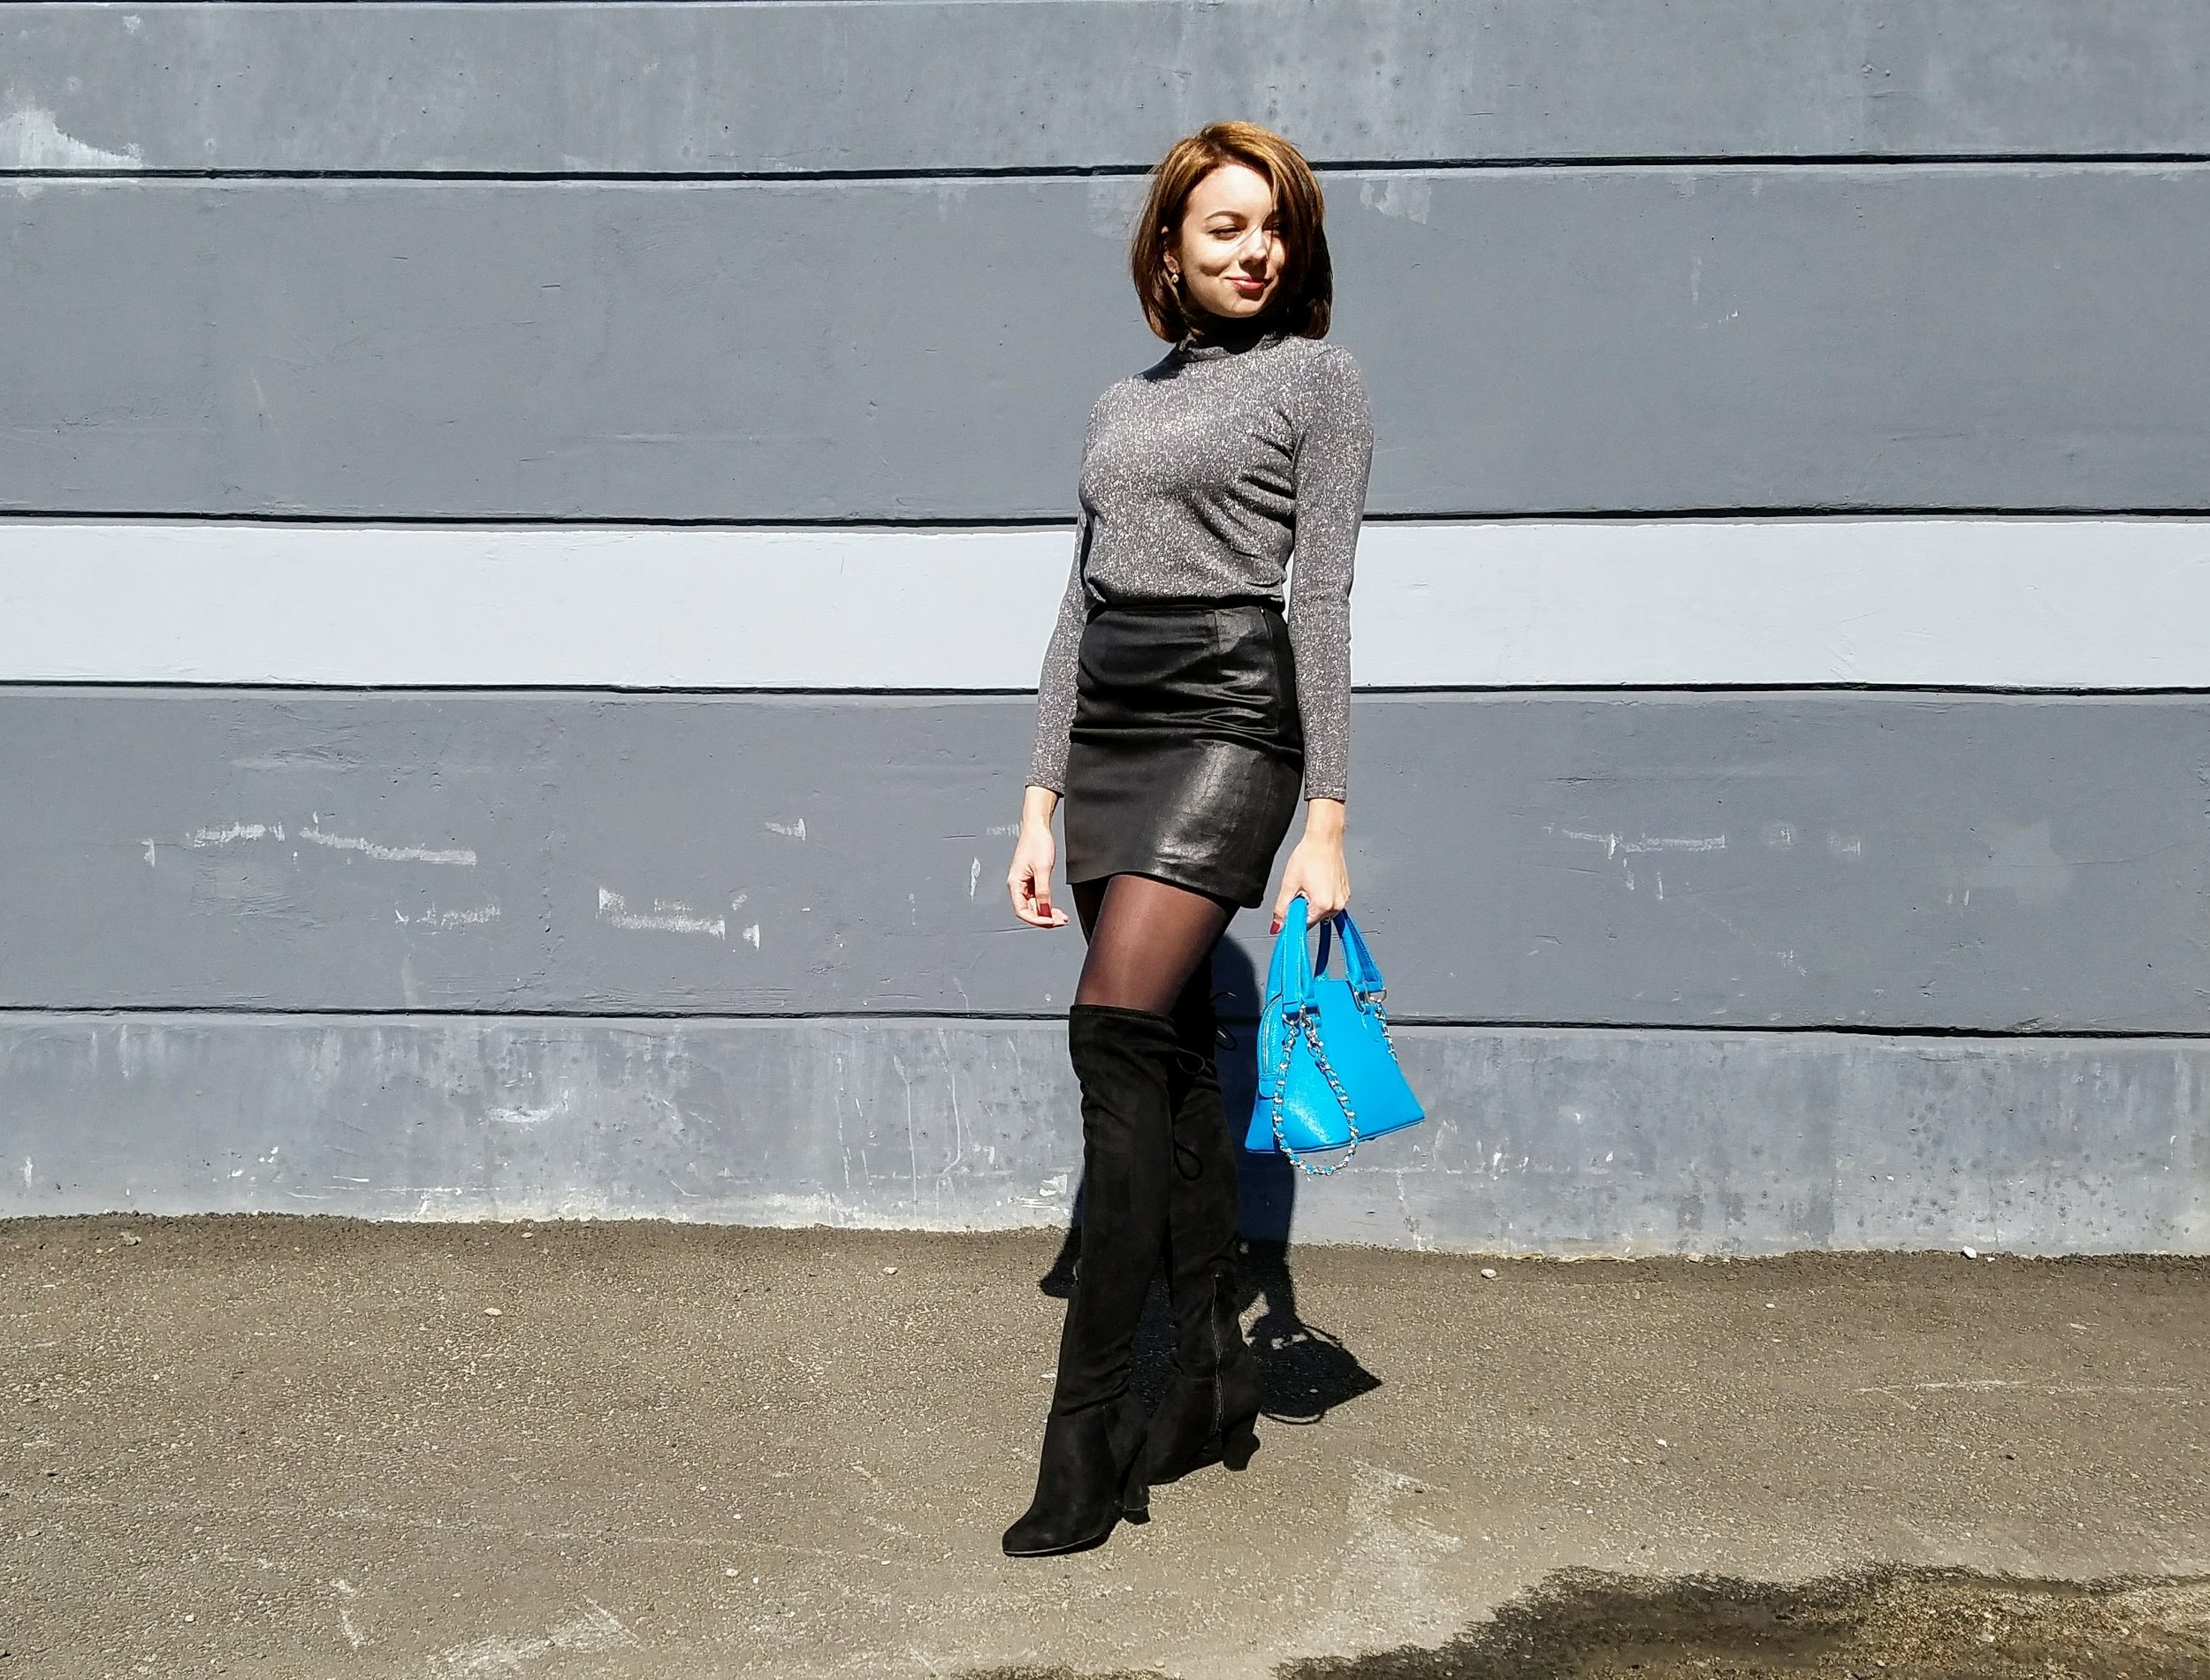 Gray turtleneck, black leather skirt, black thigh high boots, blue purse.